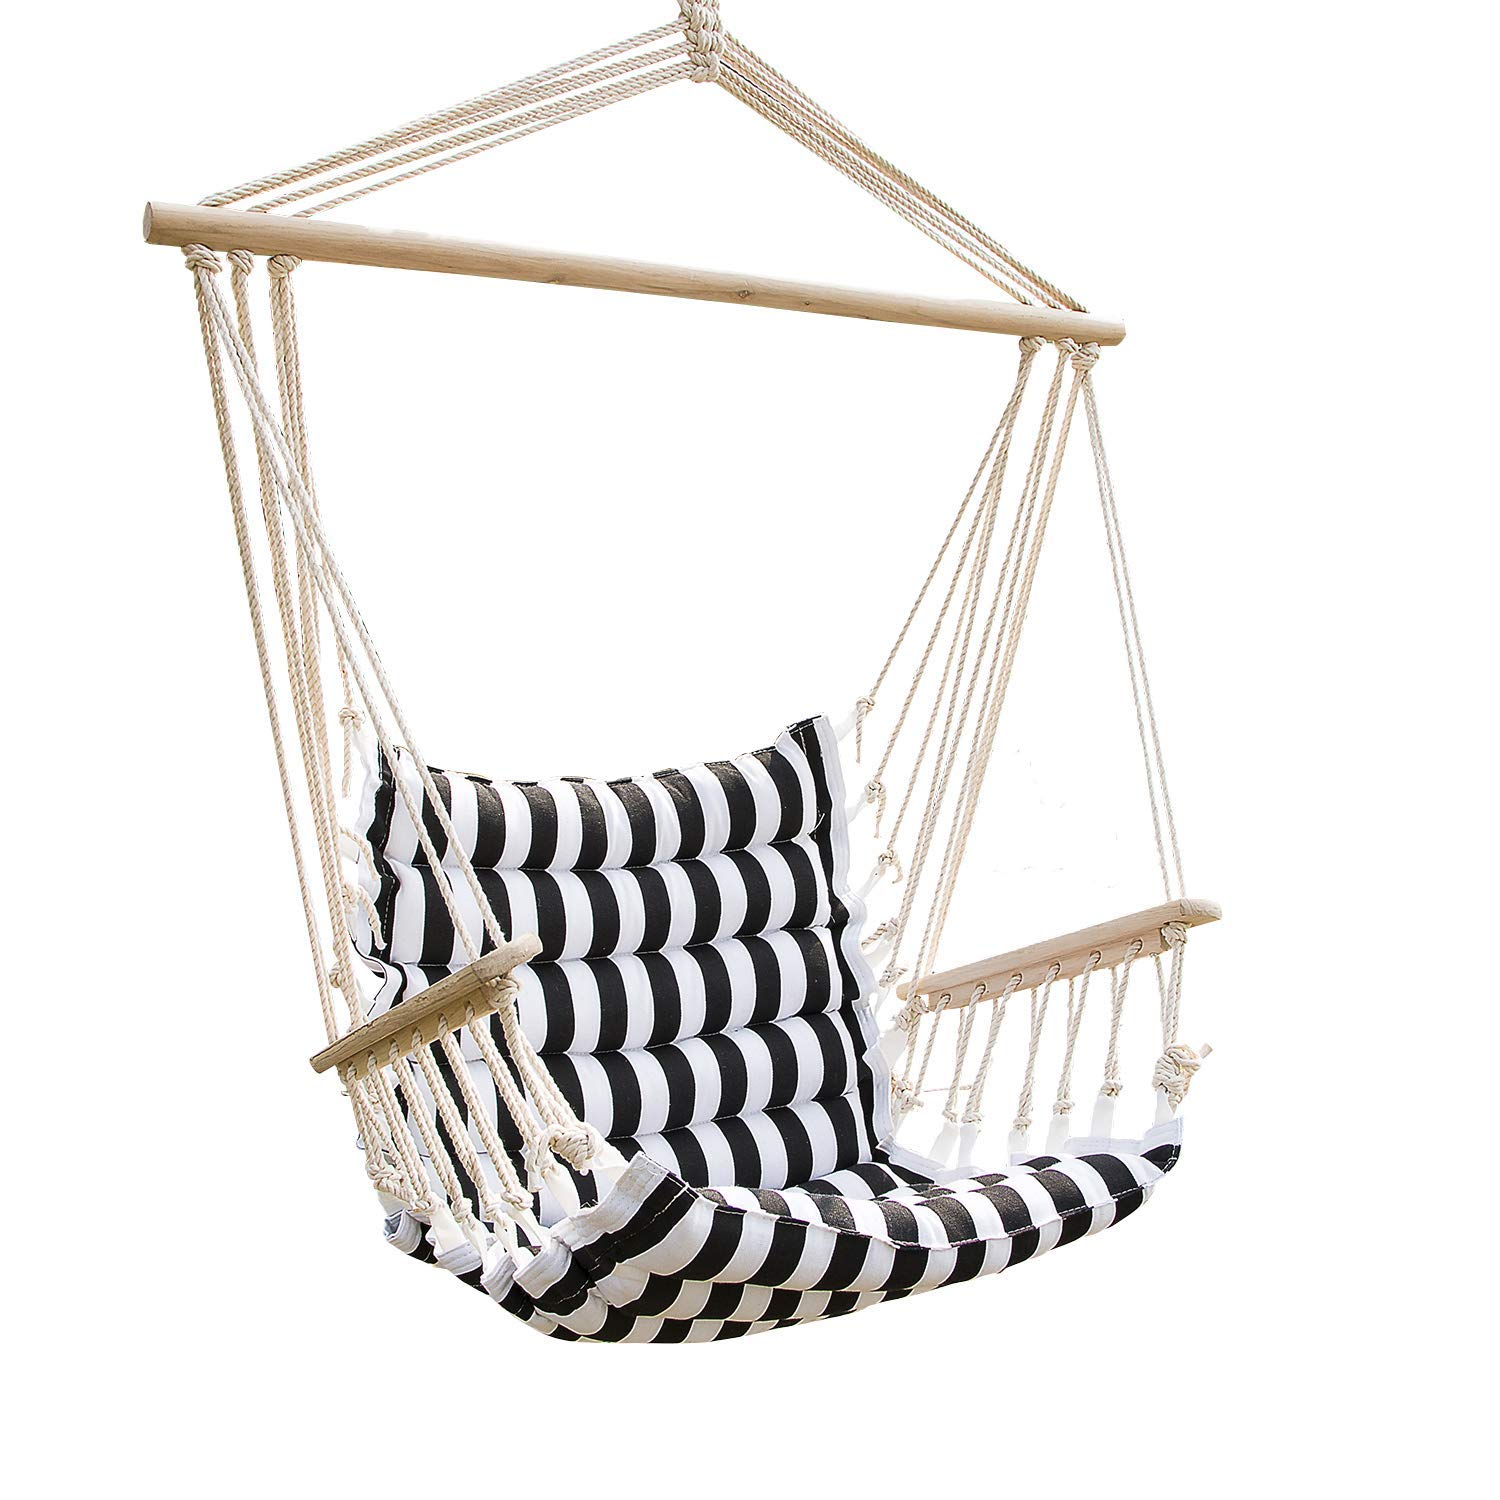 Buy Walcut Portable Polyester Cotton Swing Chair Rope Hanging